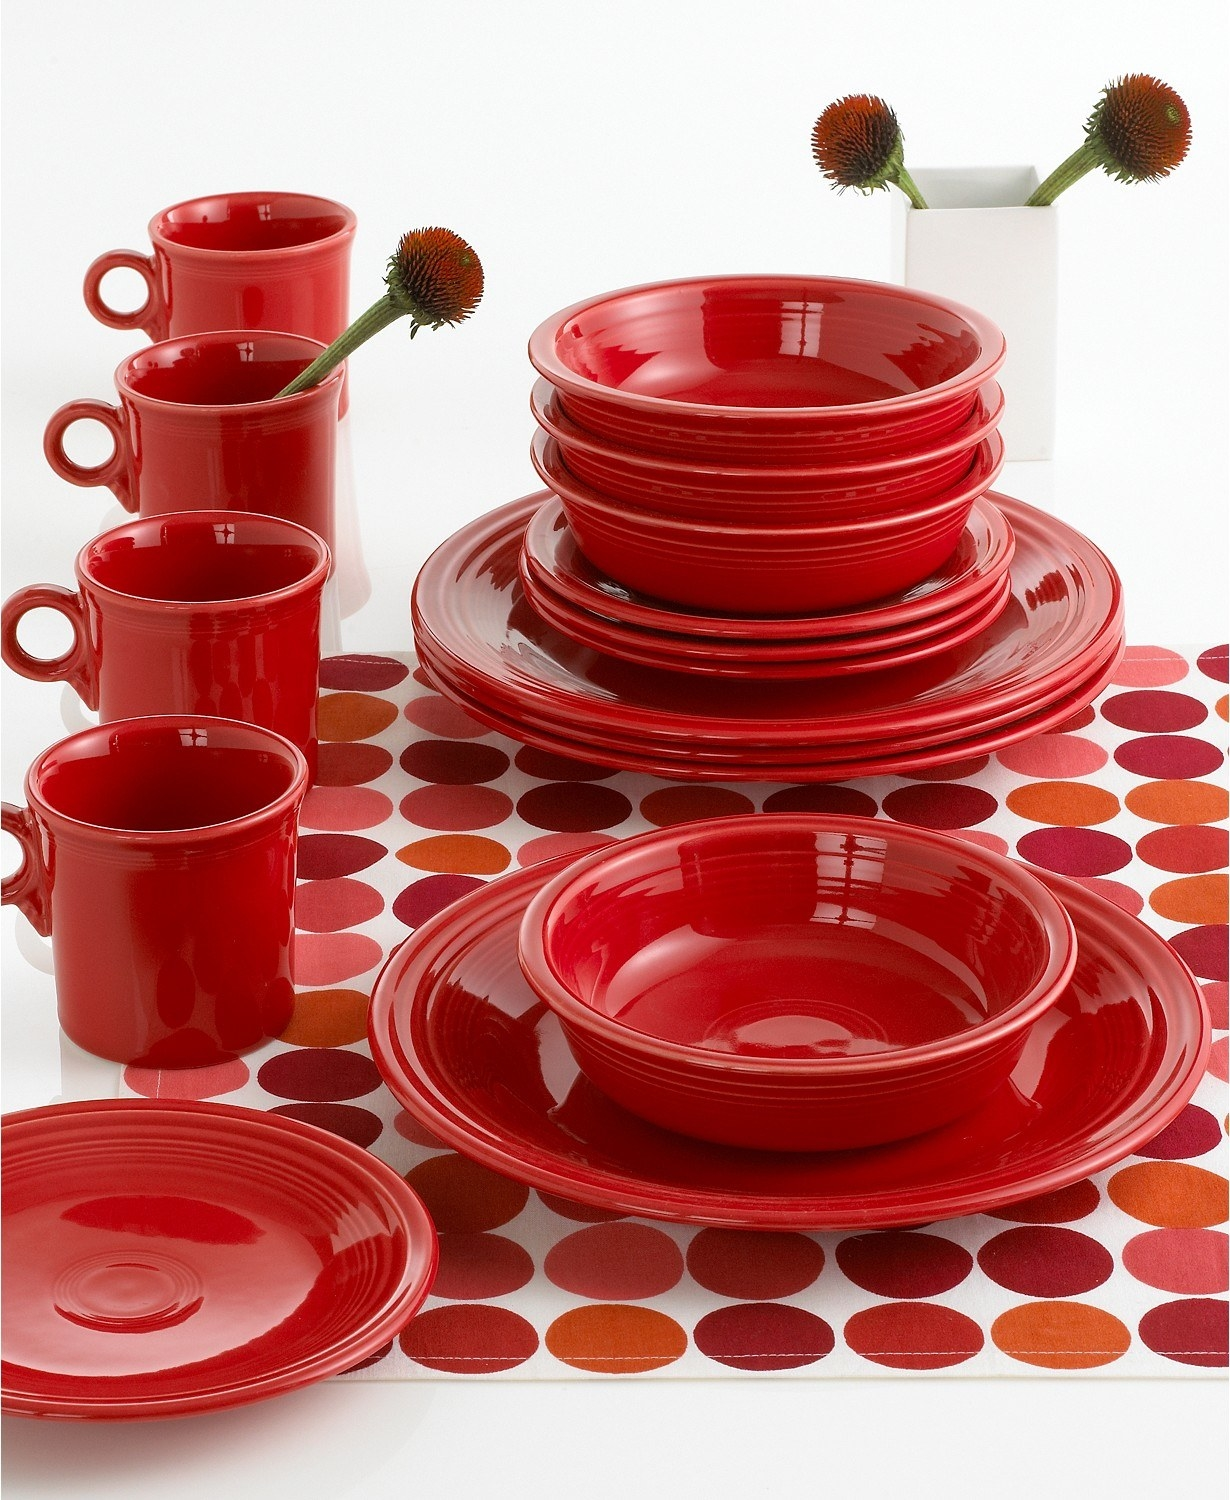 the fiesta scarlet collection on a red dotted placemat